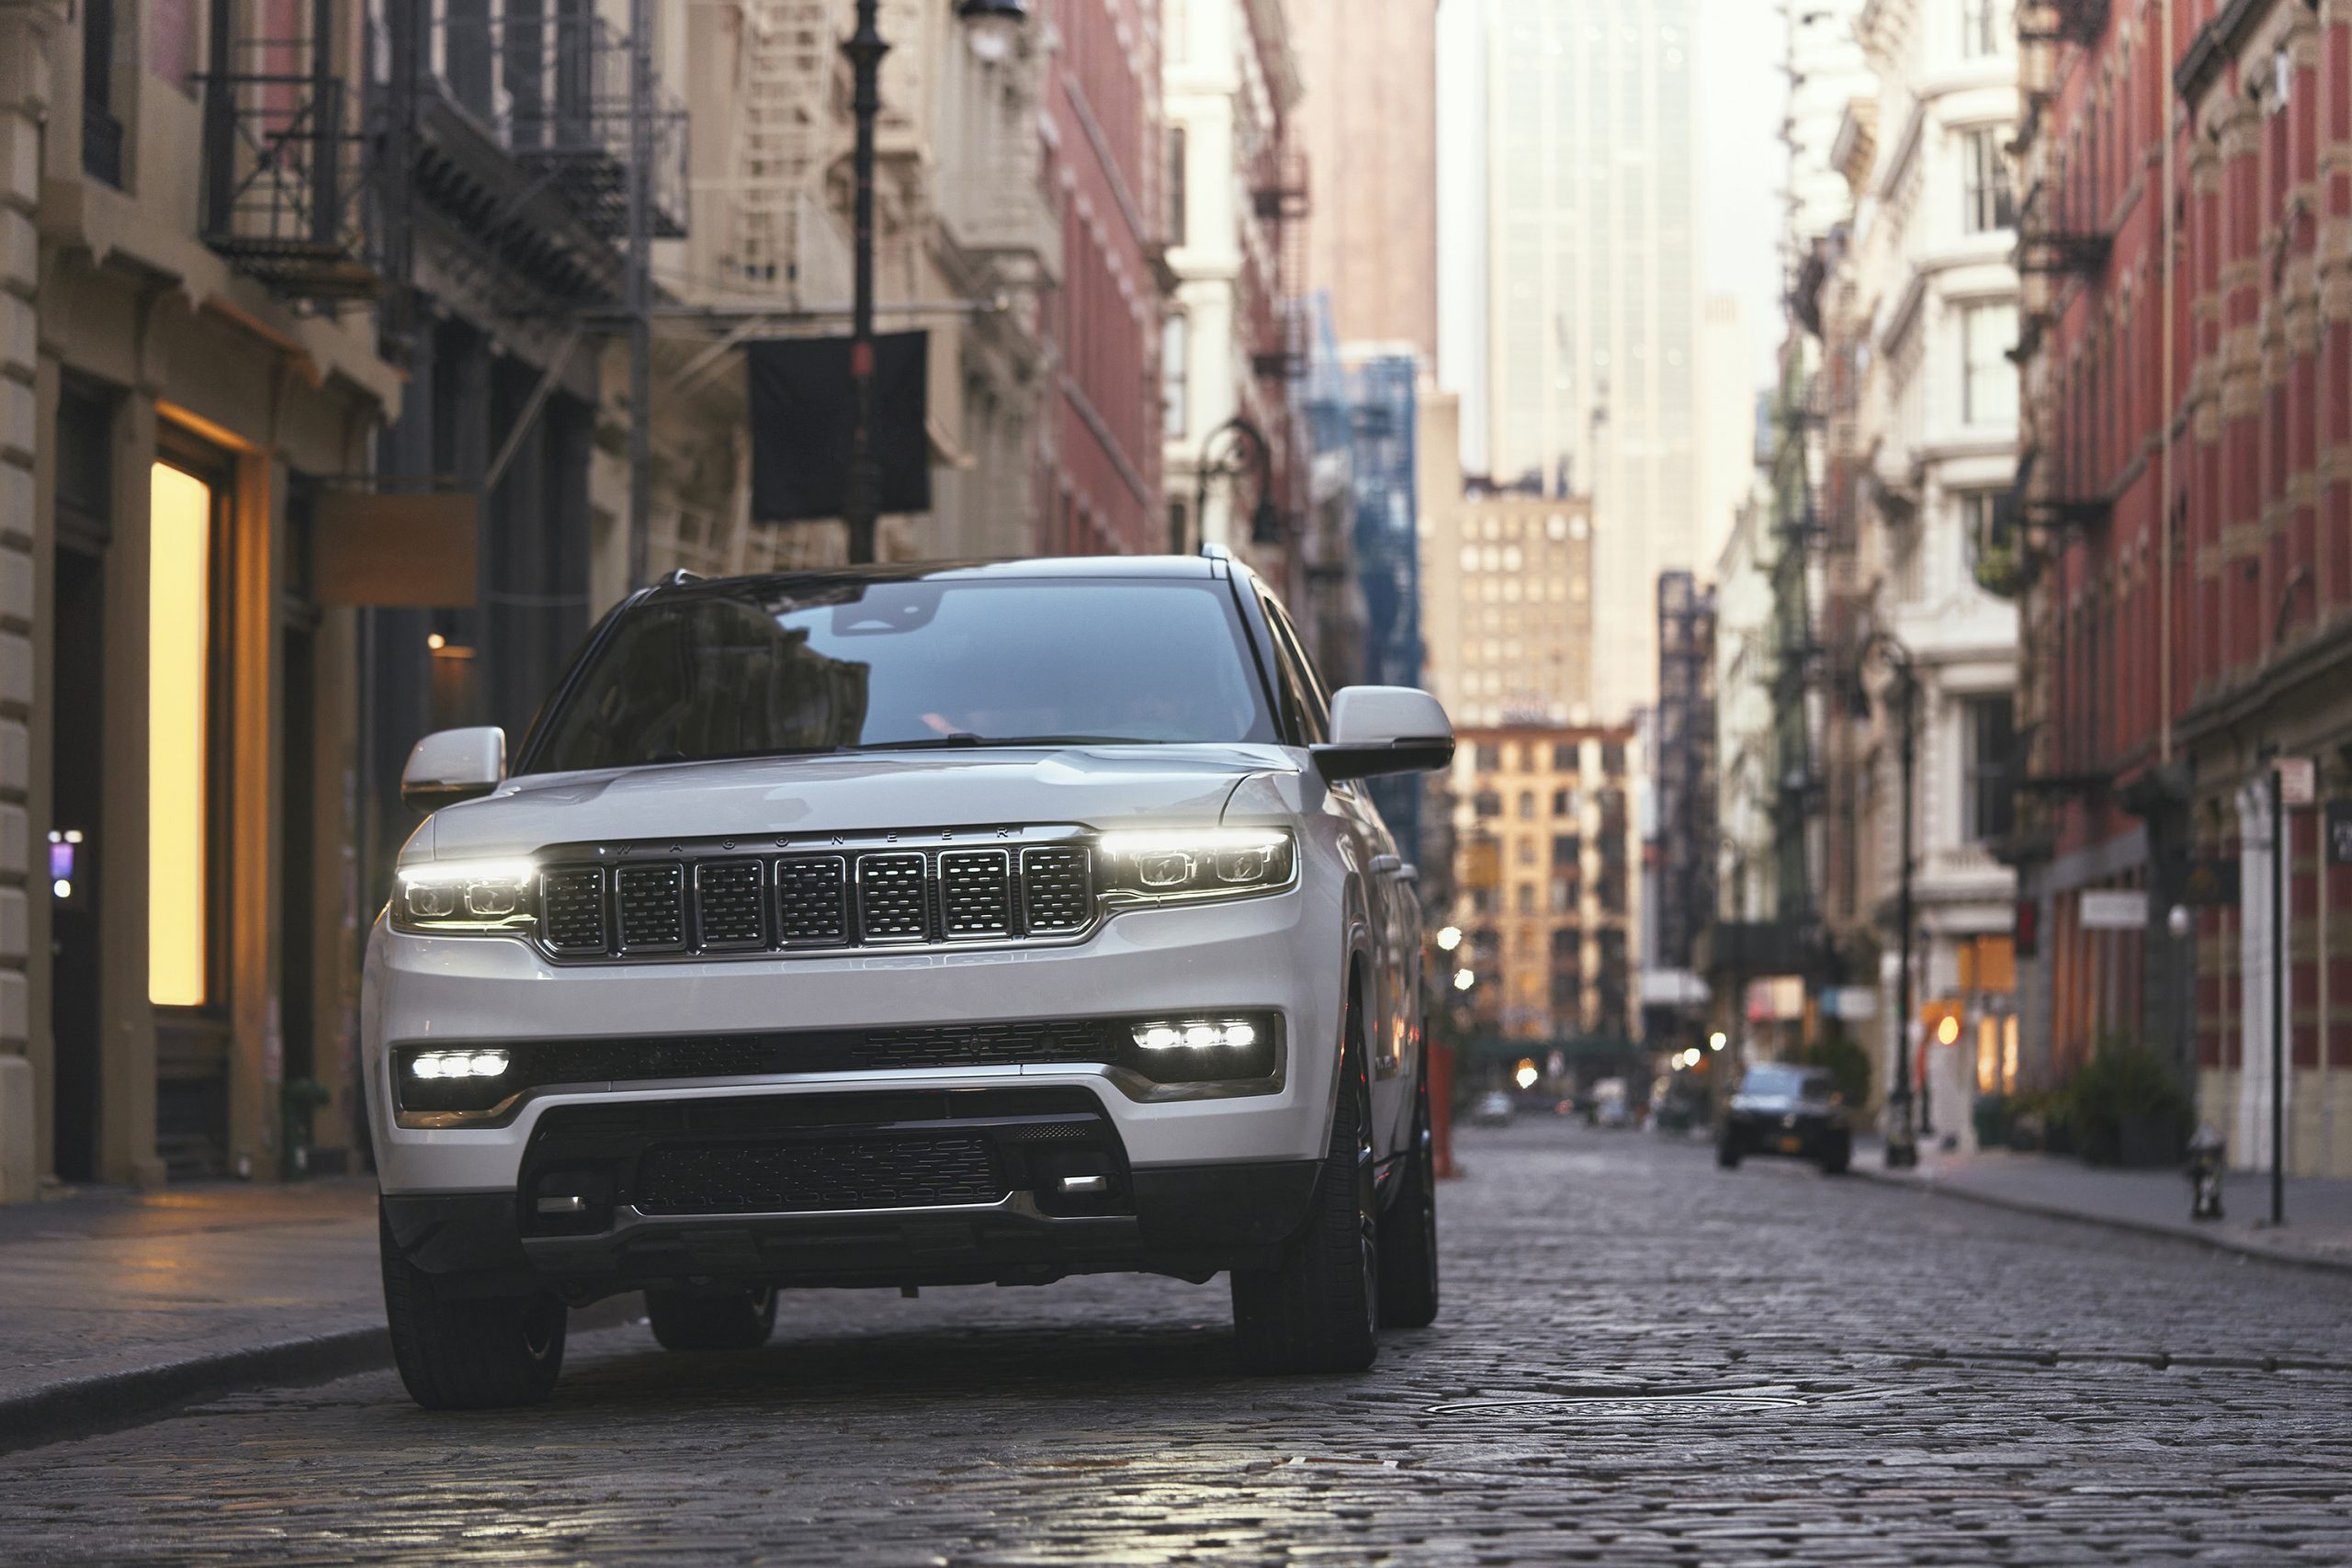 2022 Grand Wagoneer city scape front end